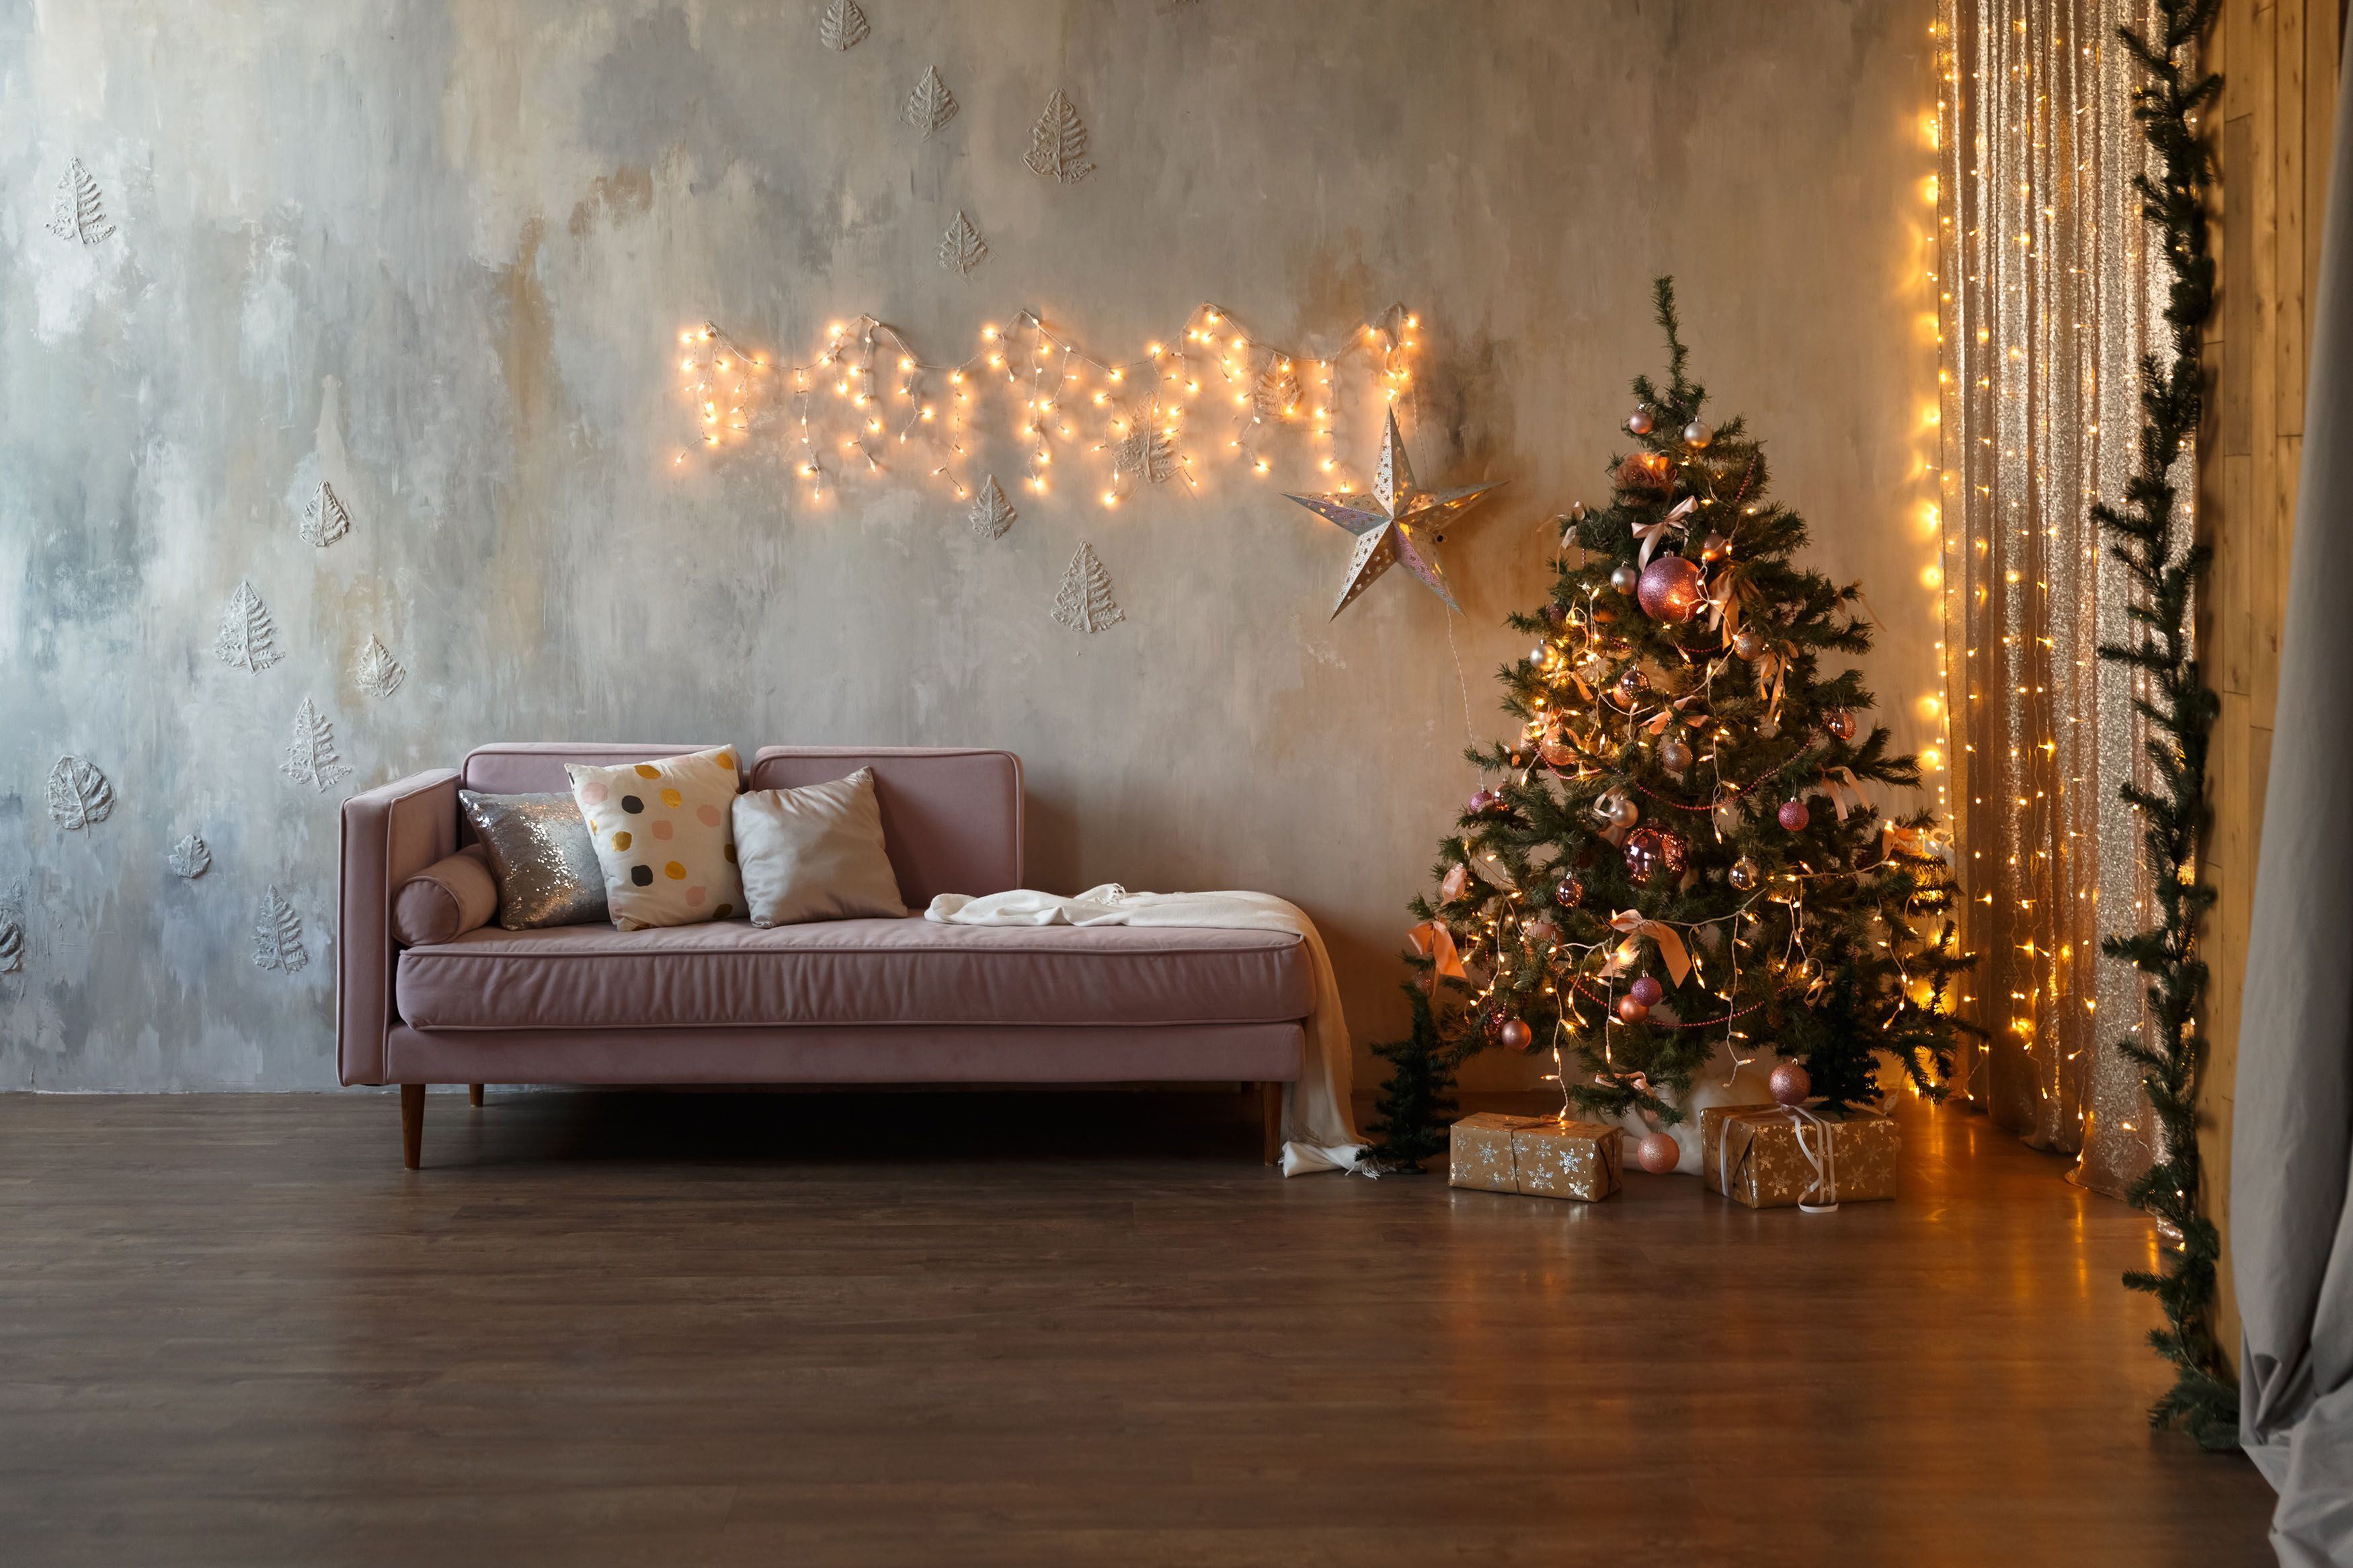 Why you should keep your Christmas decorations up until February